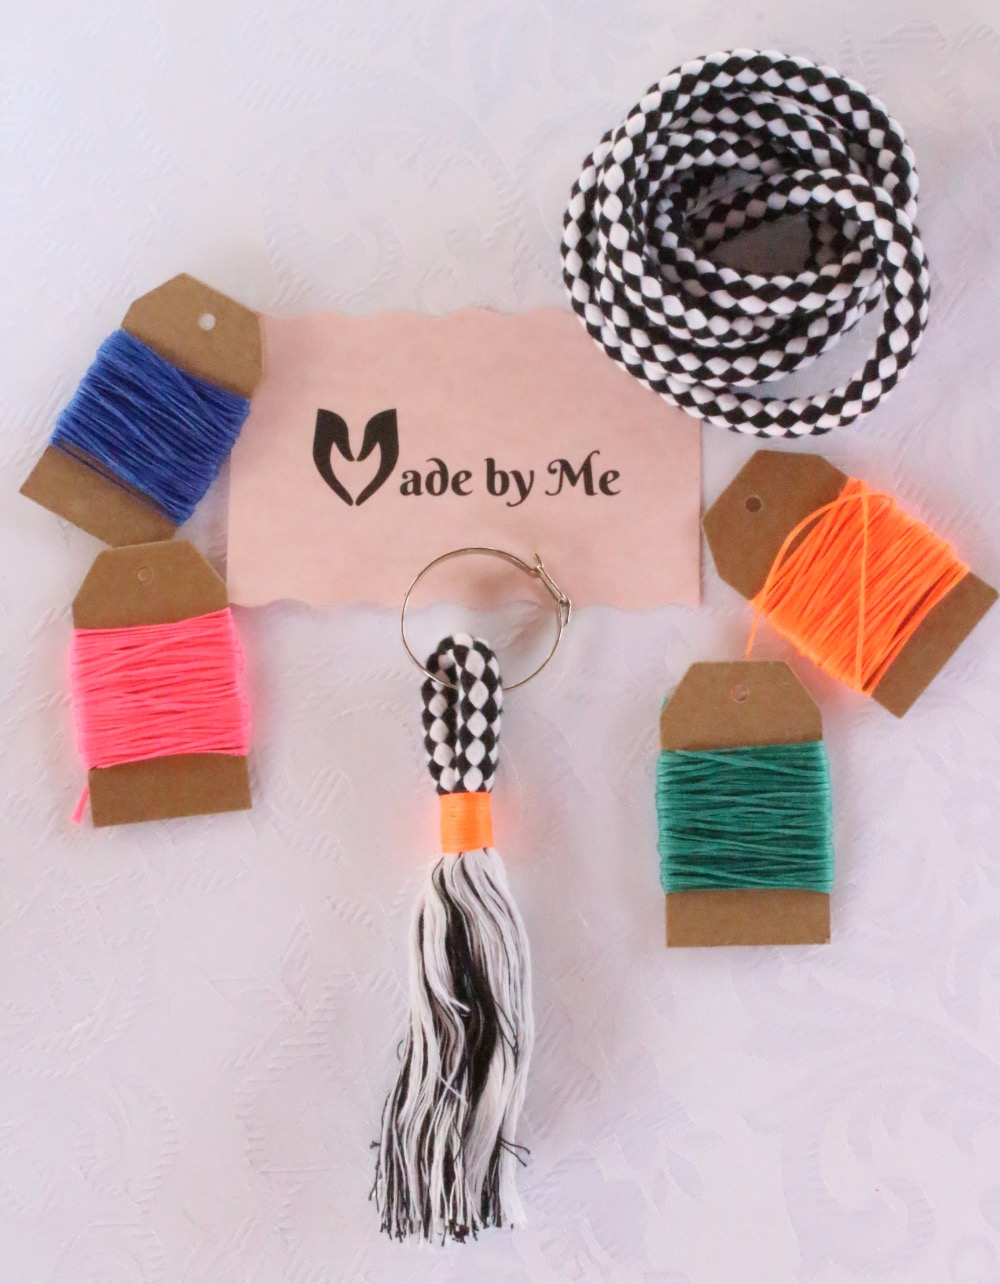 Tassel making Supplies